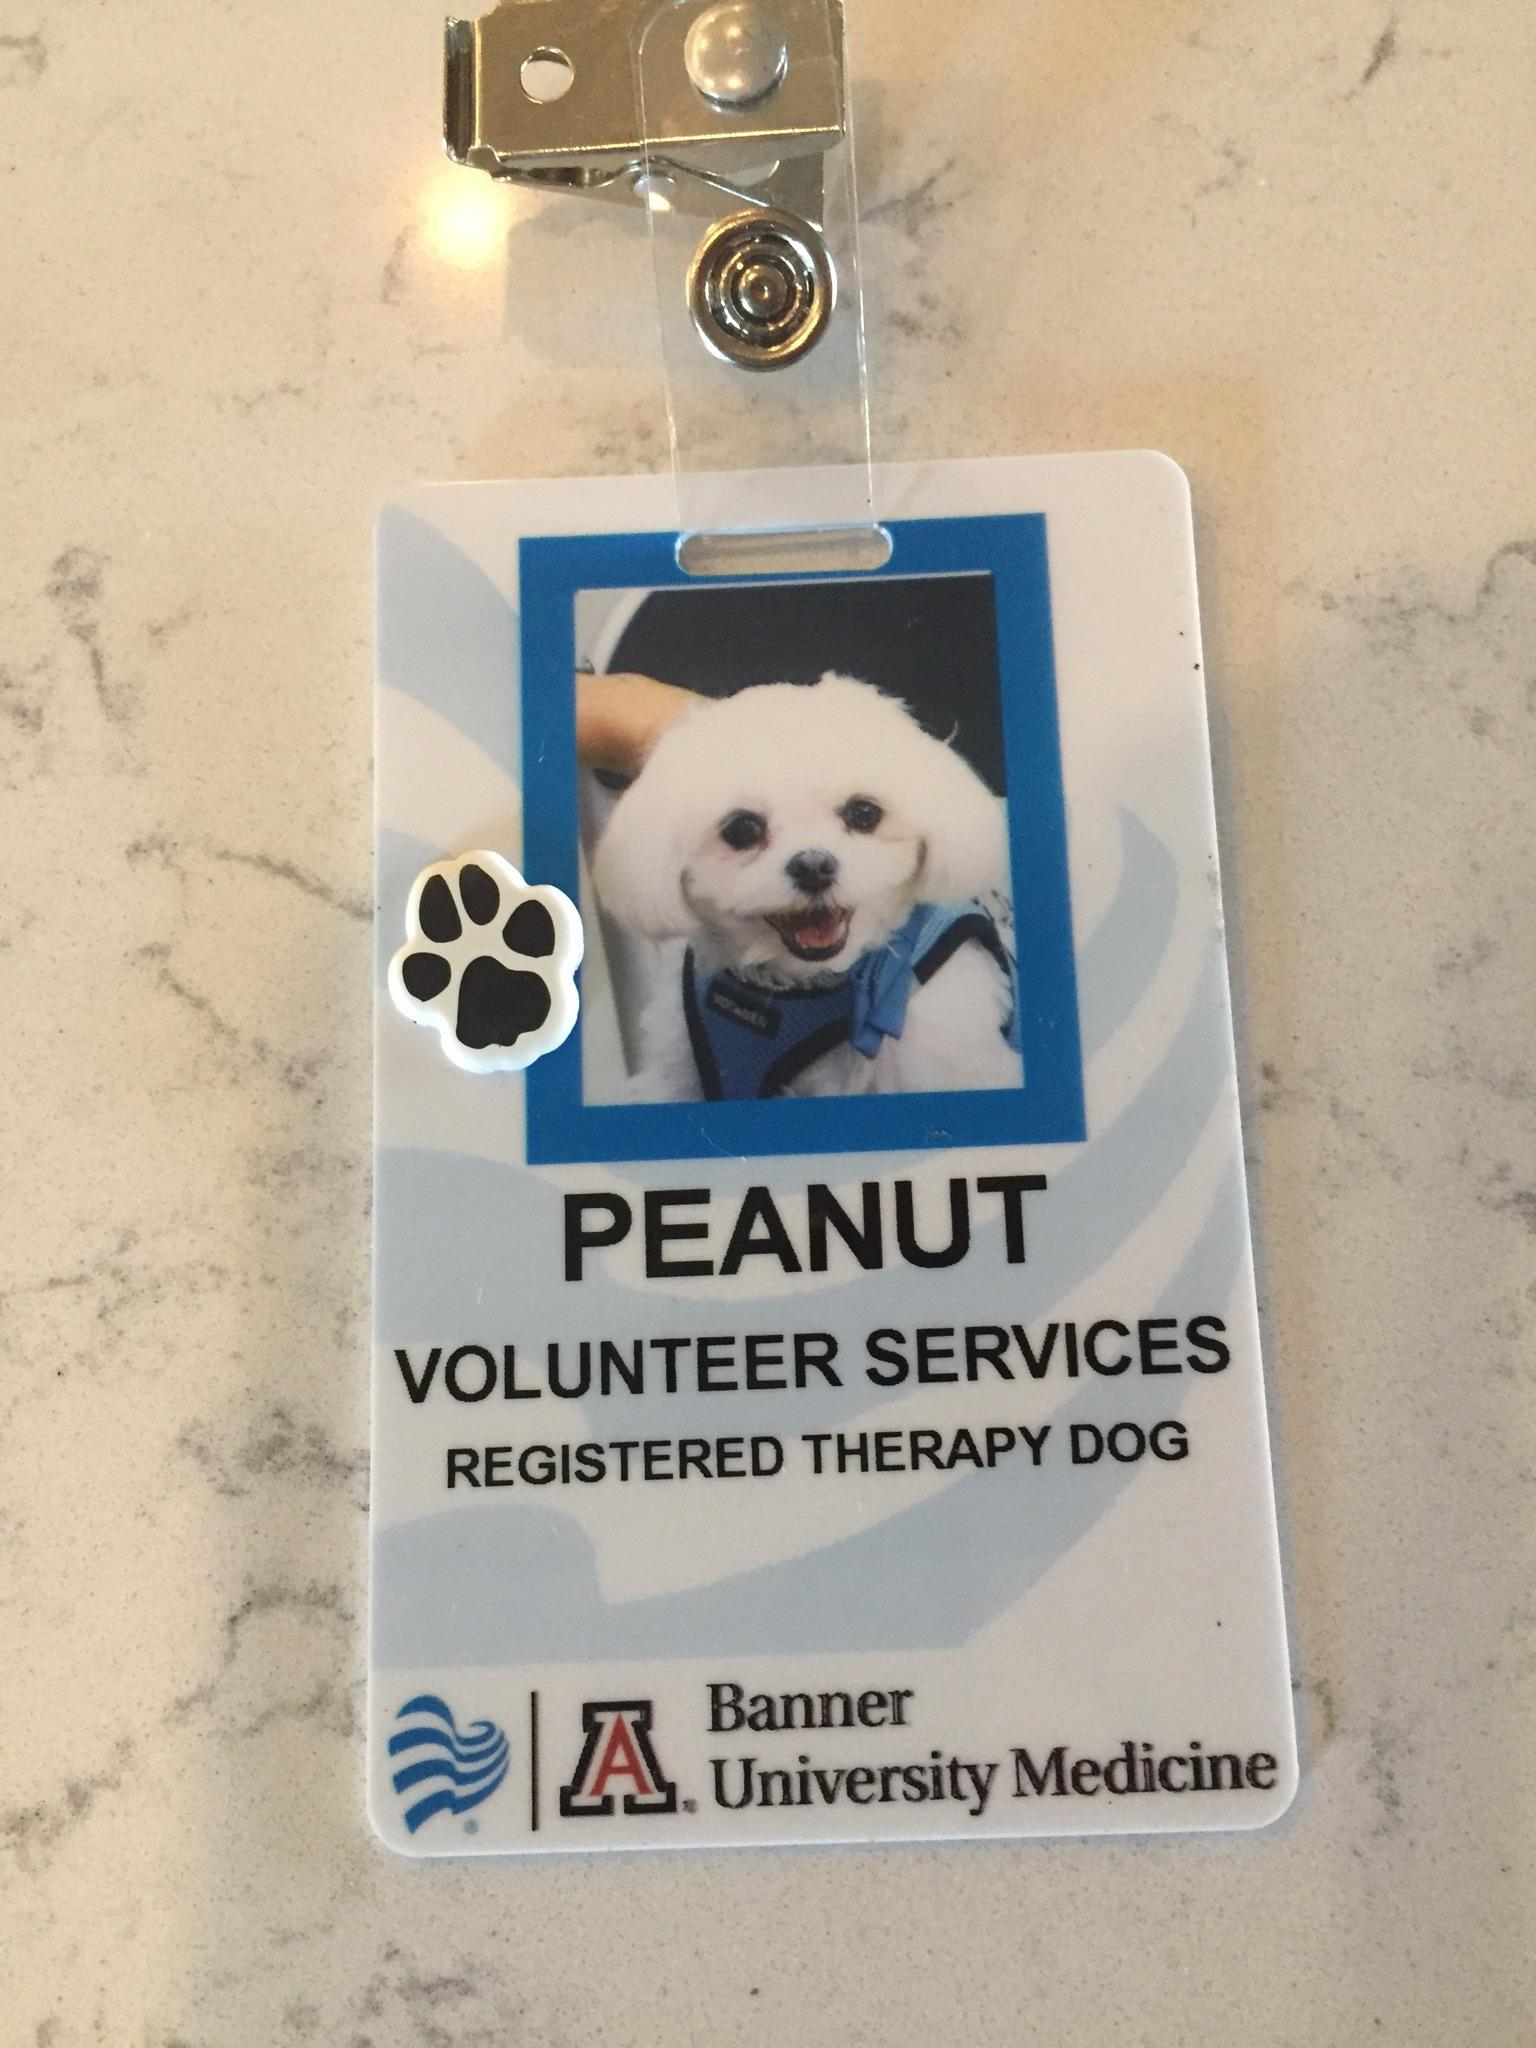 Peanut--Registered Therapy Dog